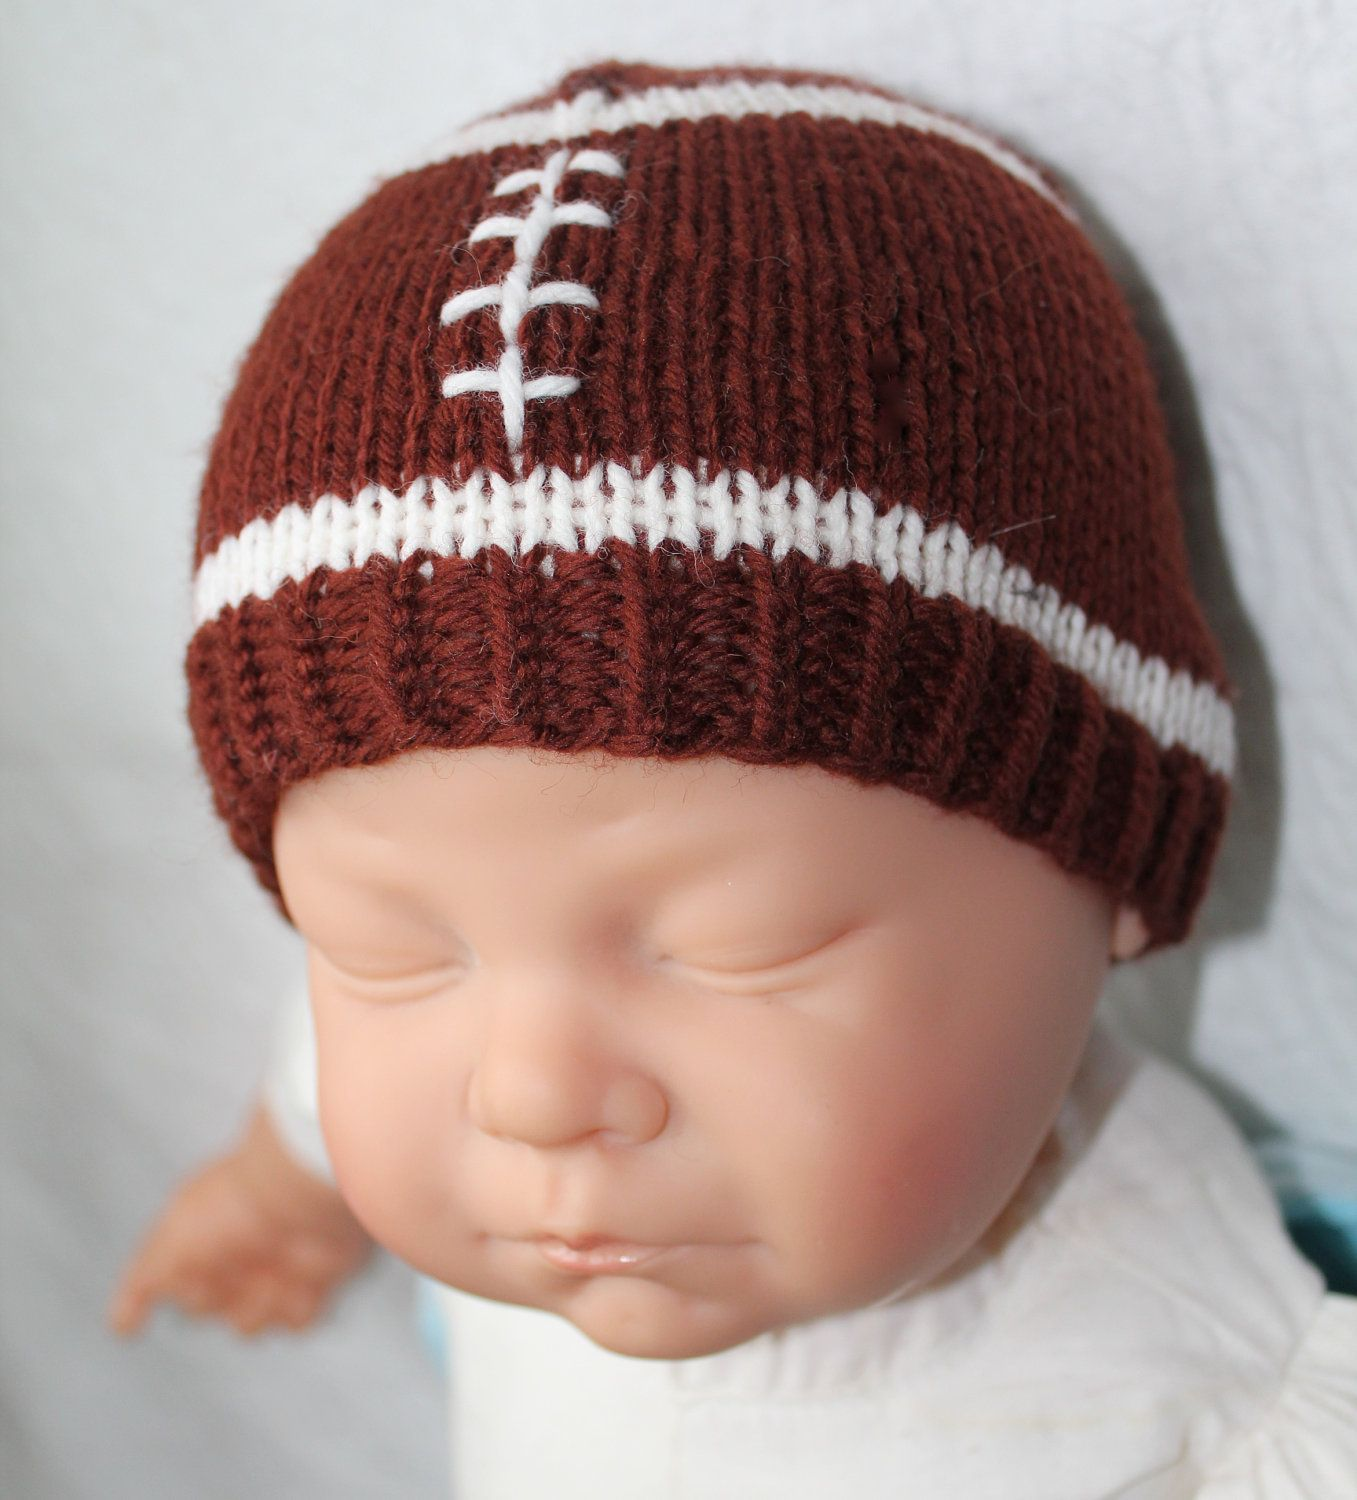 Free Knitting Patterns For Hats In The Round : PATTERN - Football Baby Hat Knitting Pattern Size 0 to 3/6 to 12 Months/1-3 Y...